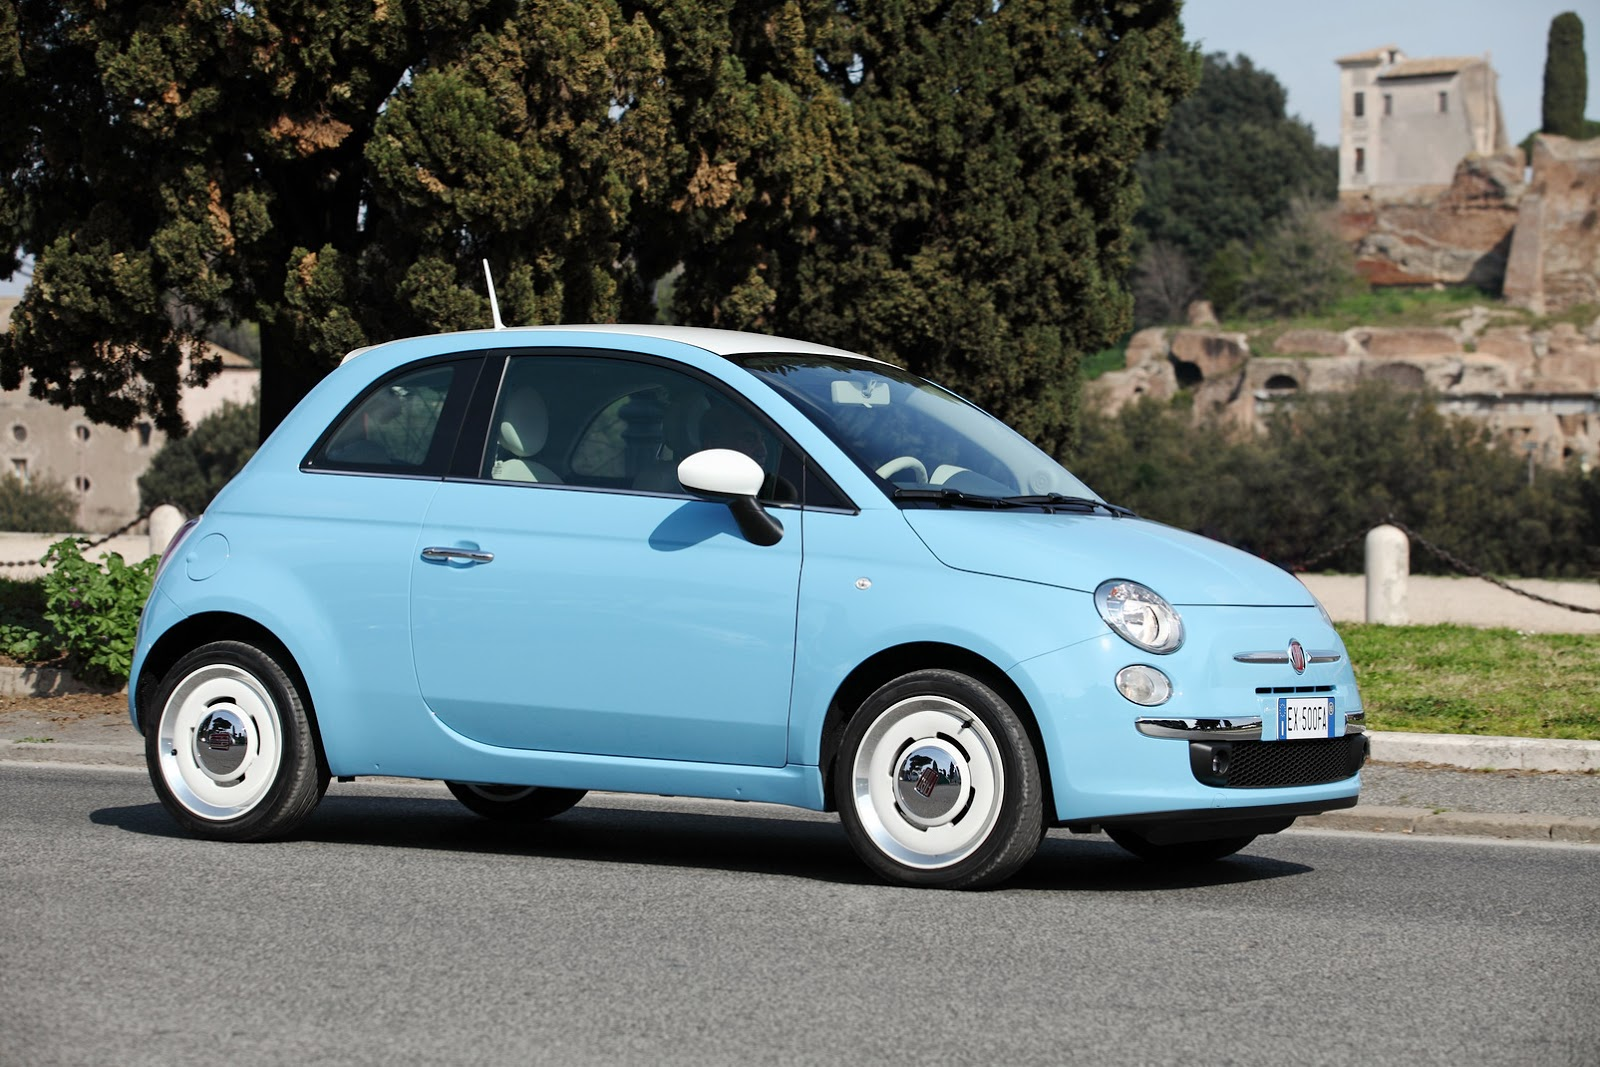 Fiat 500 Retro Fresh Photos Of Fiat 39s Adorable New 500 Vintage 3957